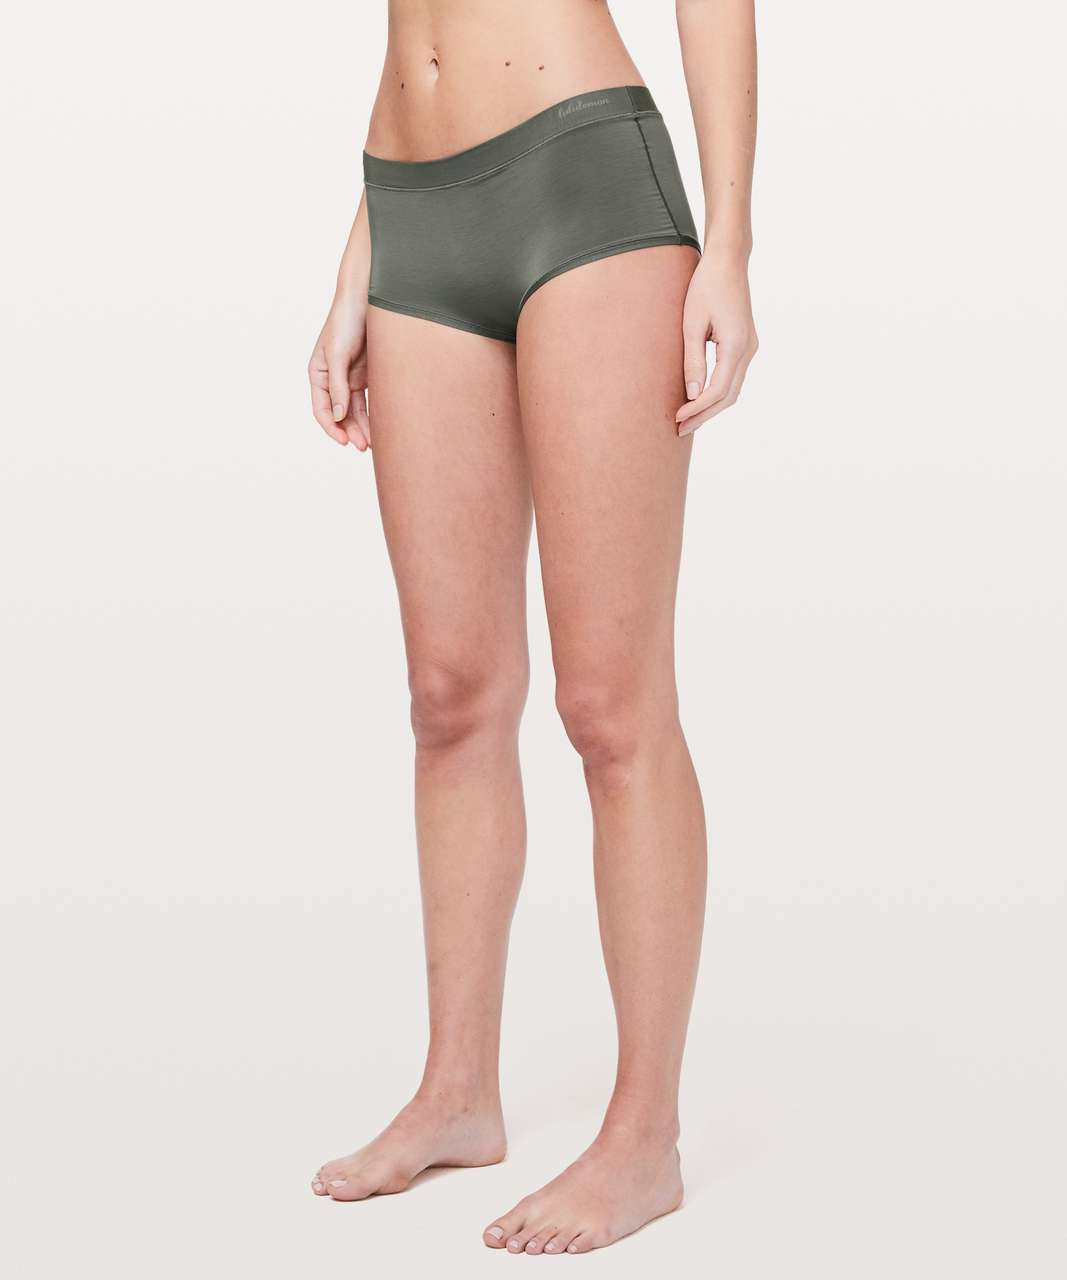 Lululemon Simply There Boyshort - Grey Sage (First Release)